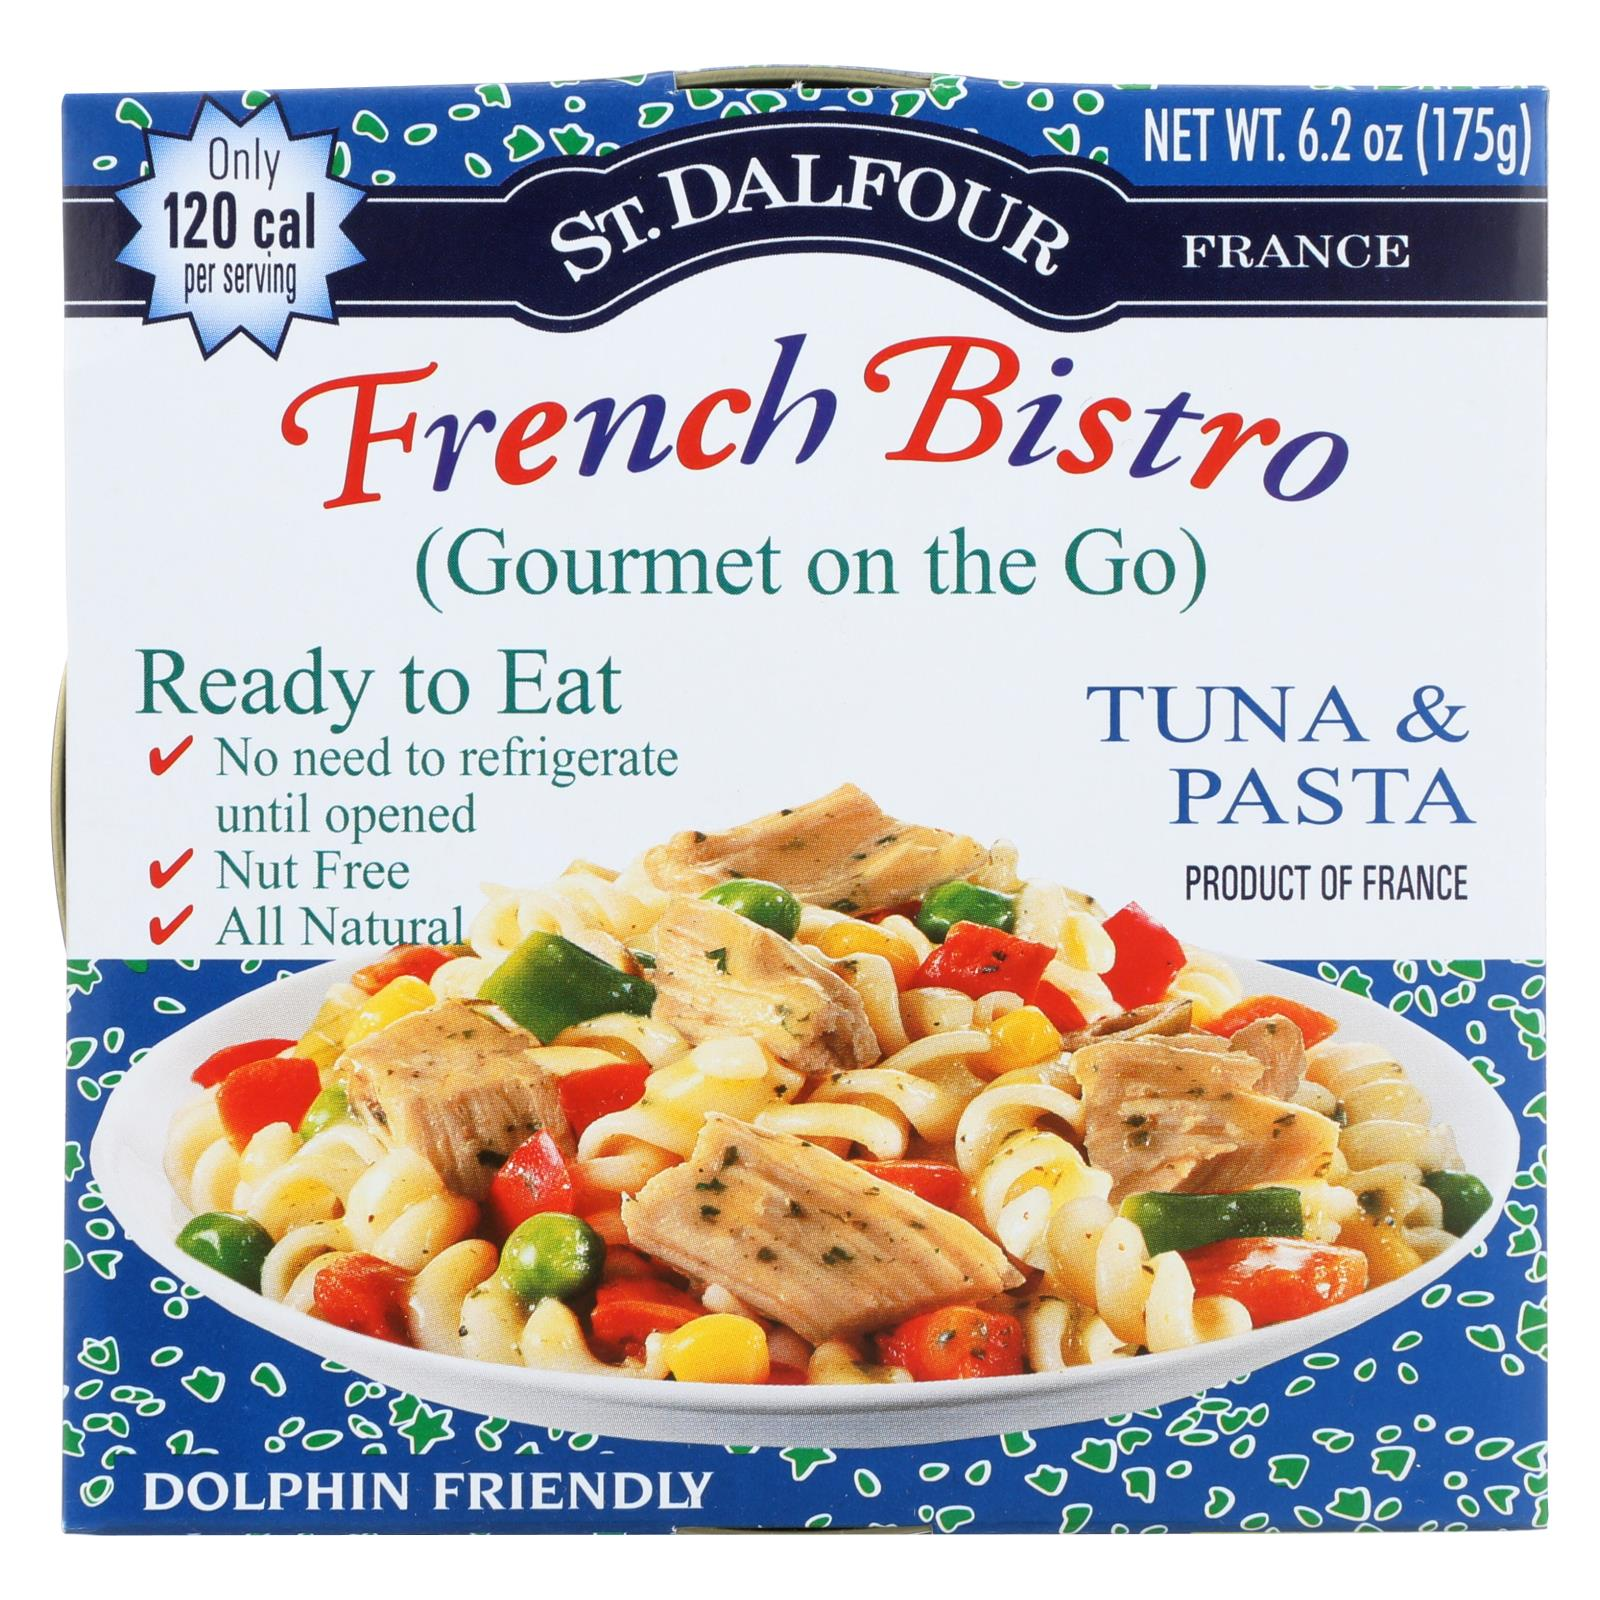 St Dalfour Gourmet On The Go - Ready To Eat - Tuna And Pasta - 6.2 Oz - Case Of 6 HG0337428